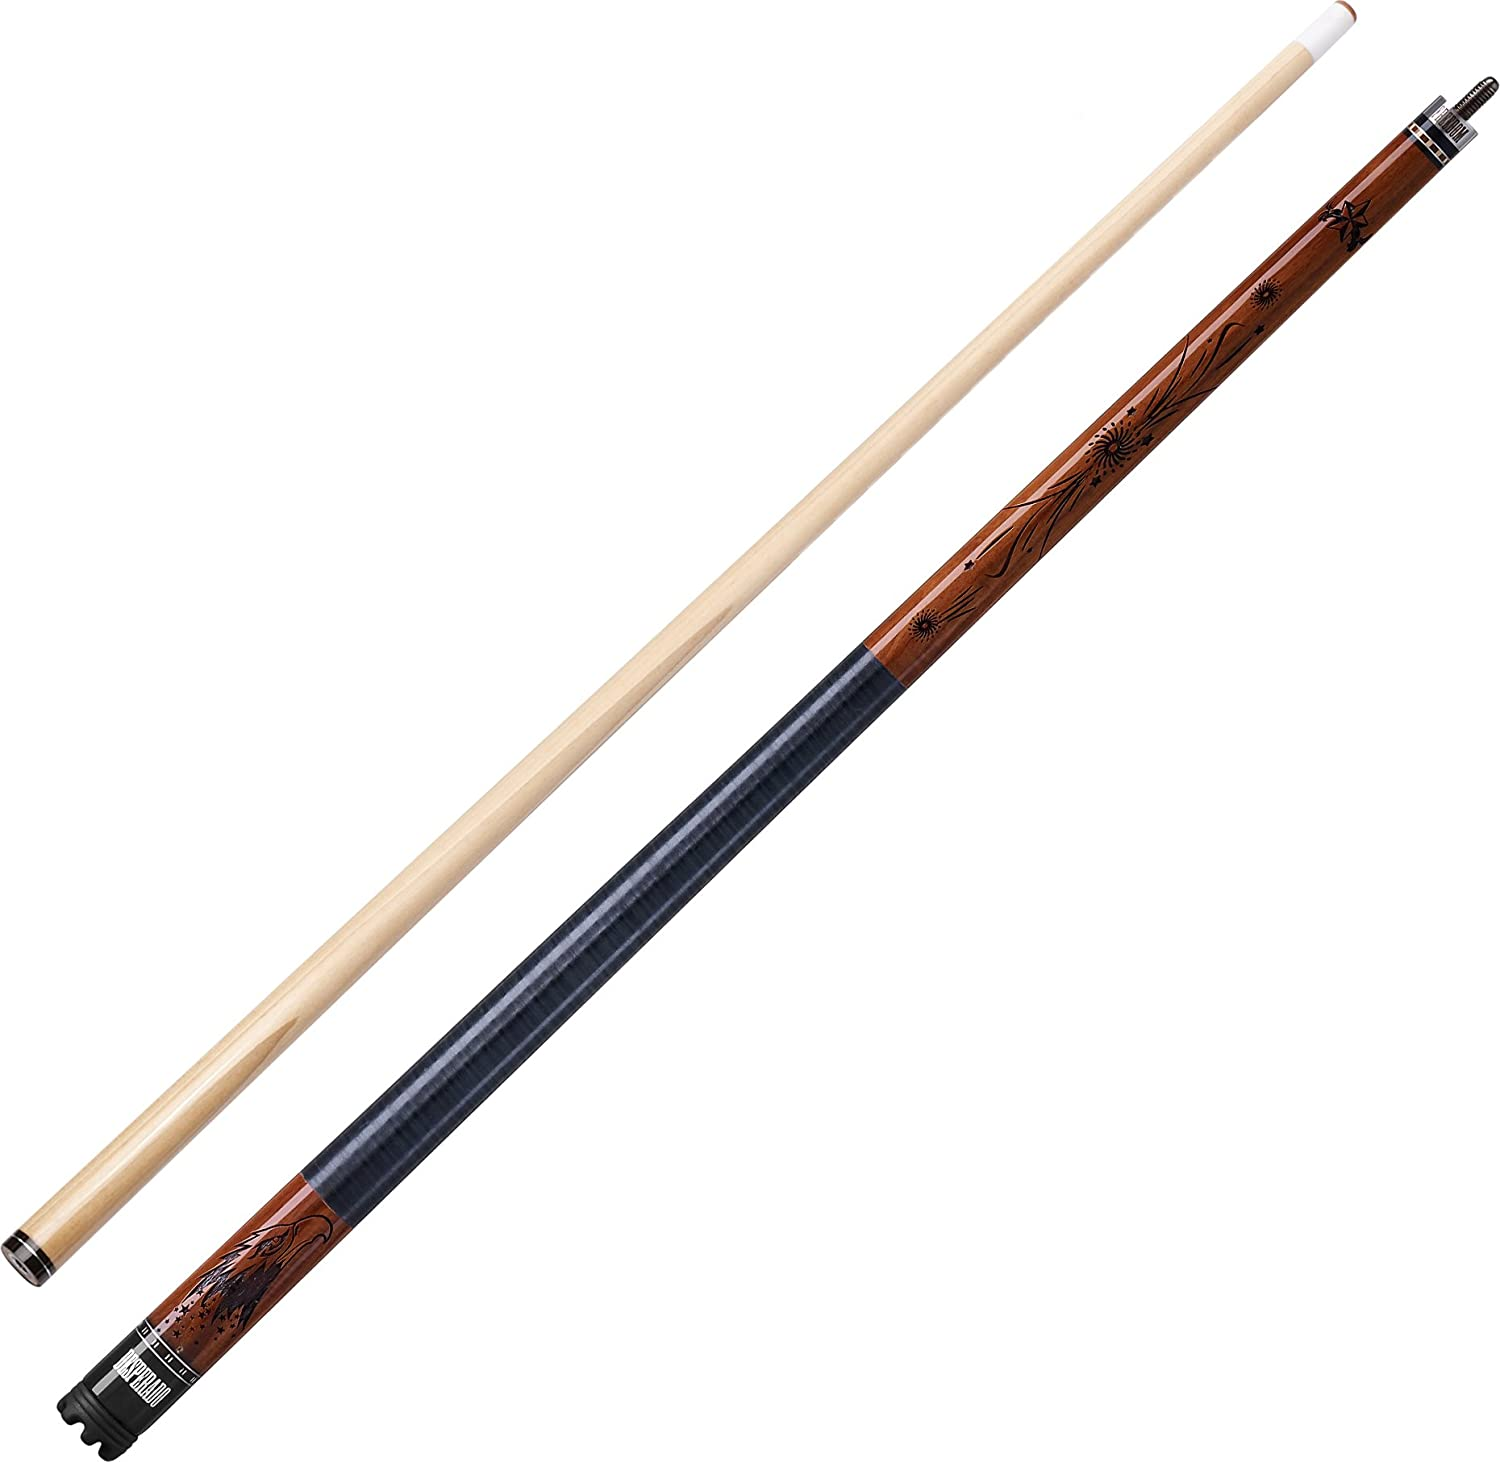 Viper Desperado 58 2-Piece Billiard/Pool Cue, Freedom Viper by GLD Products 50-1000